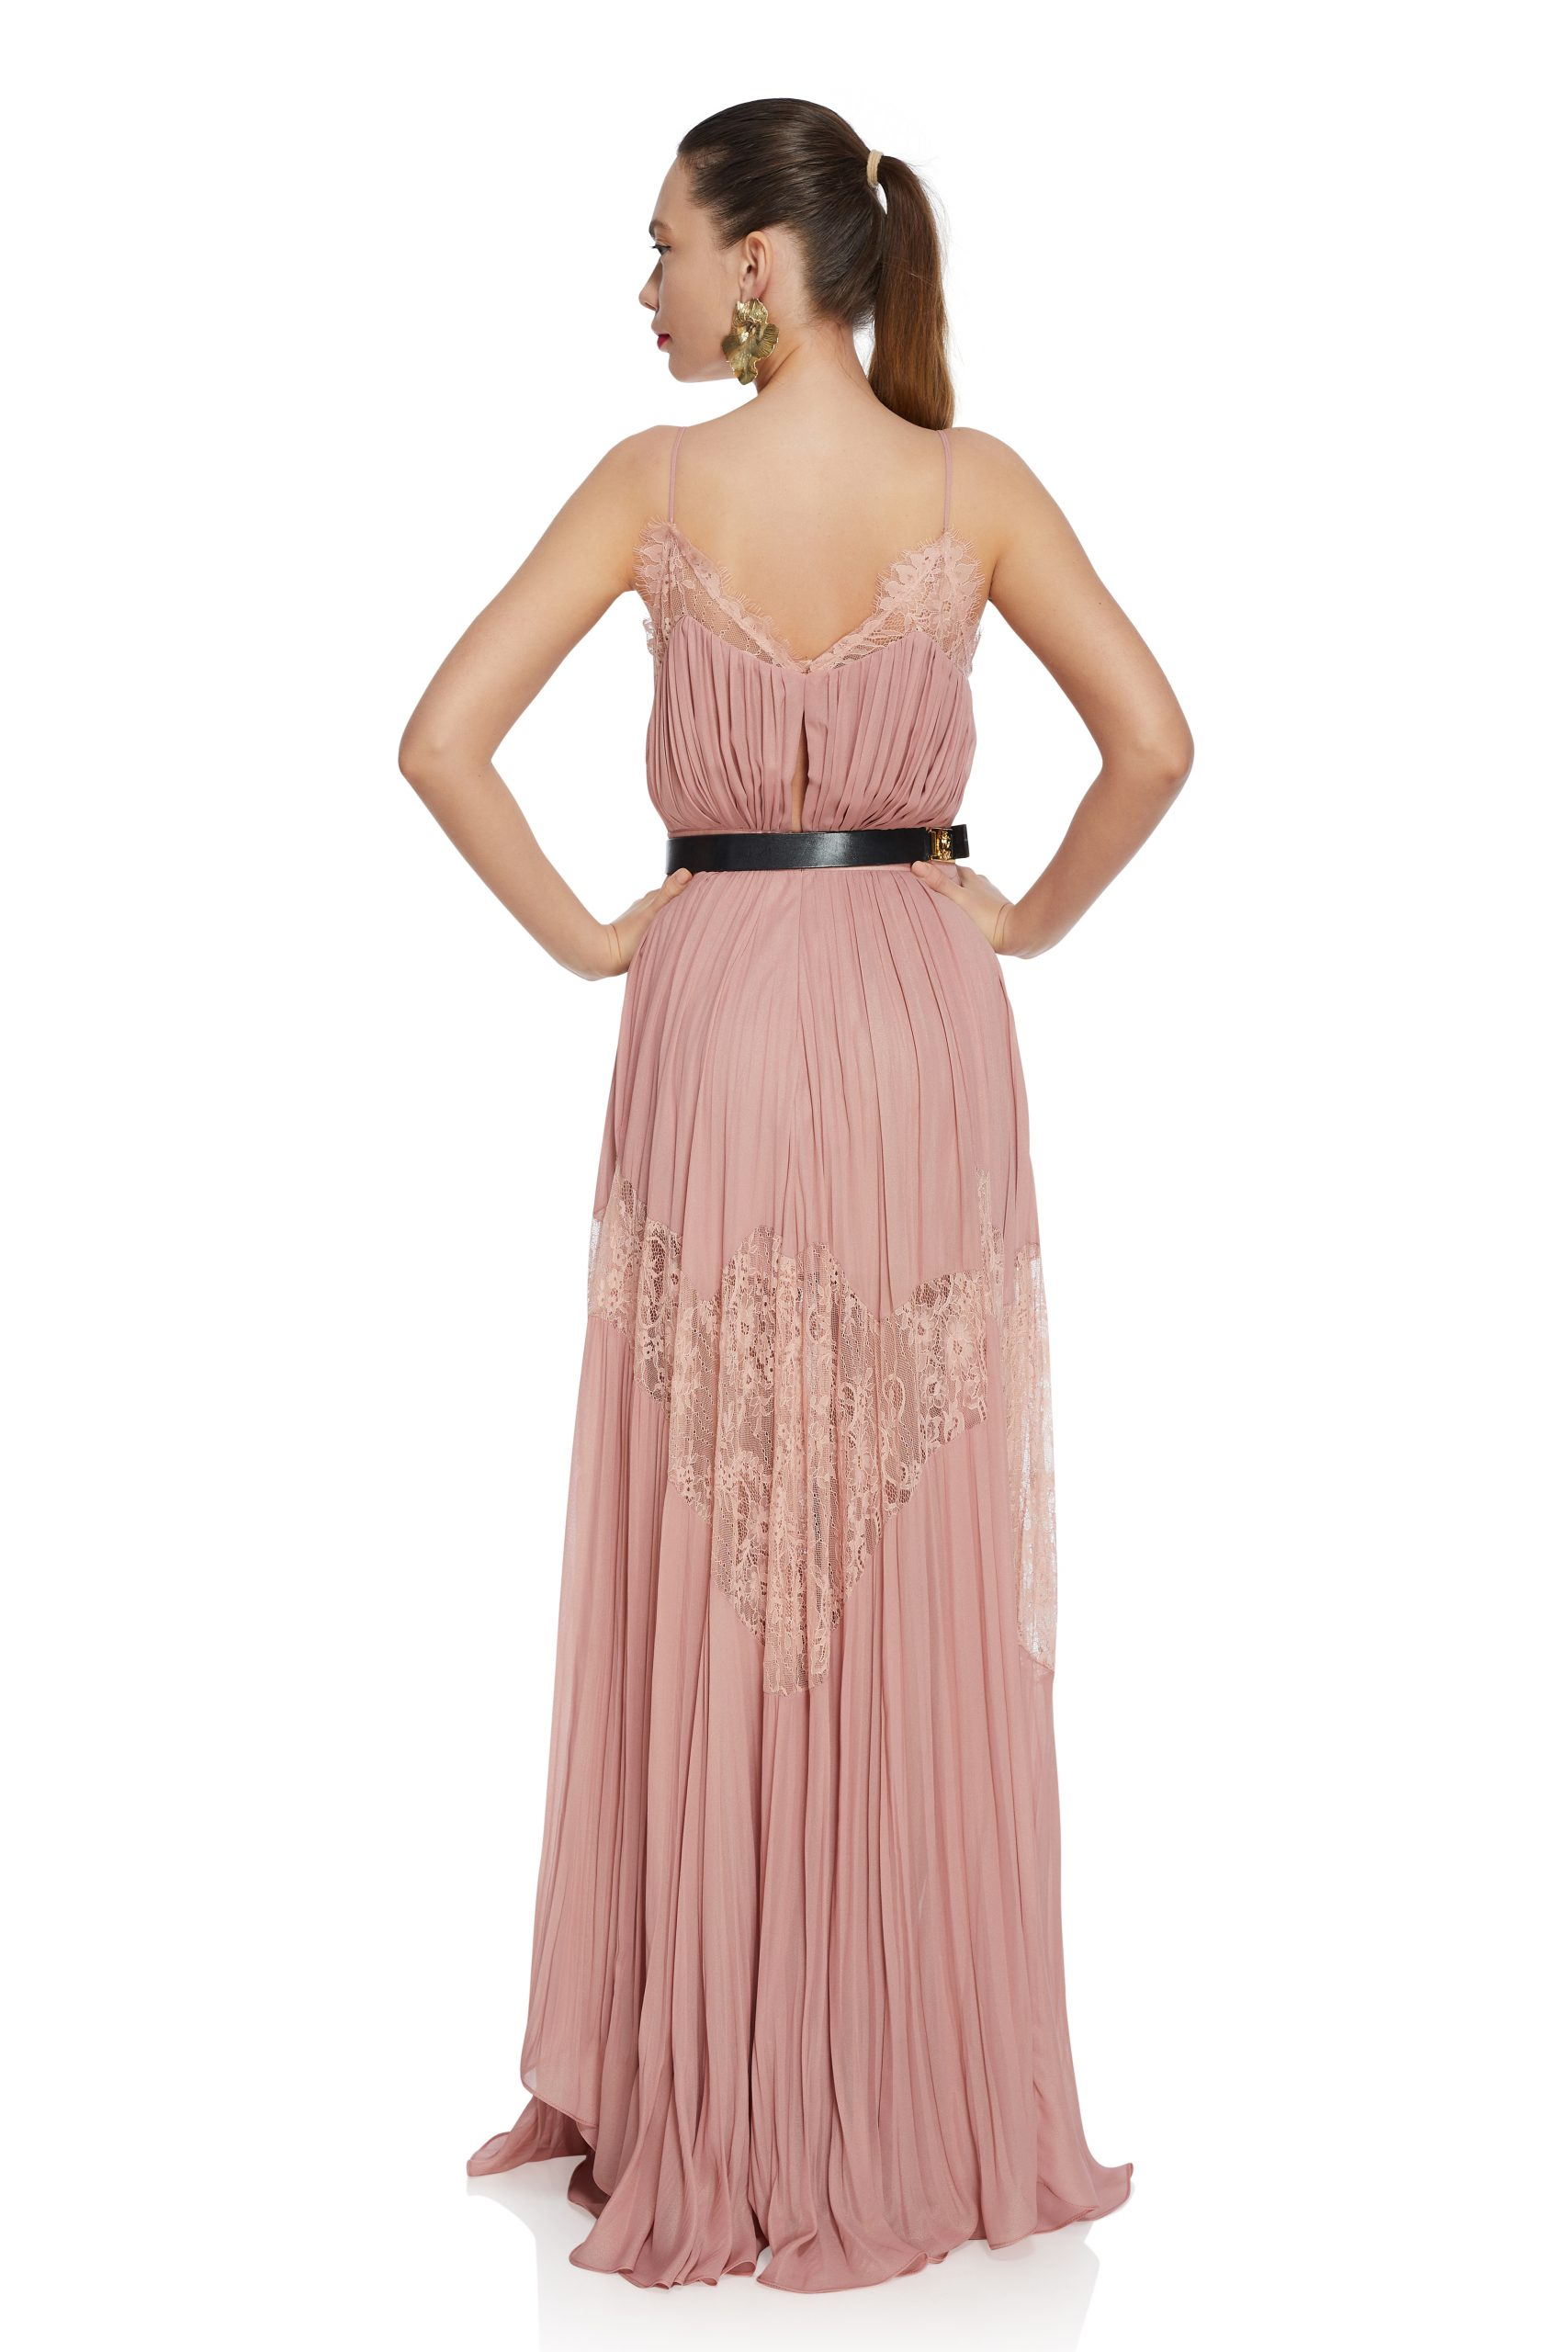 Pink pleated lace dress